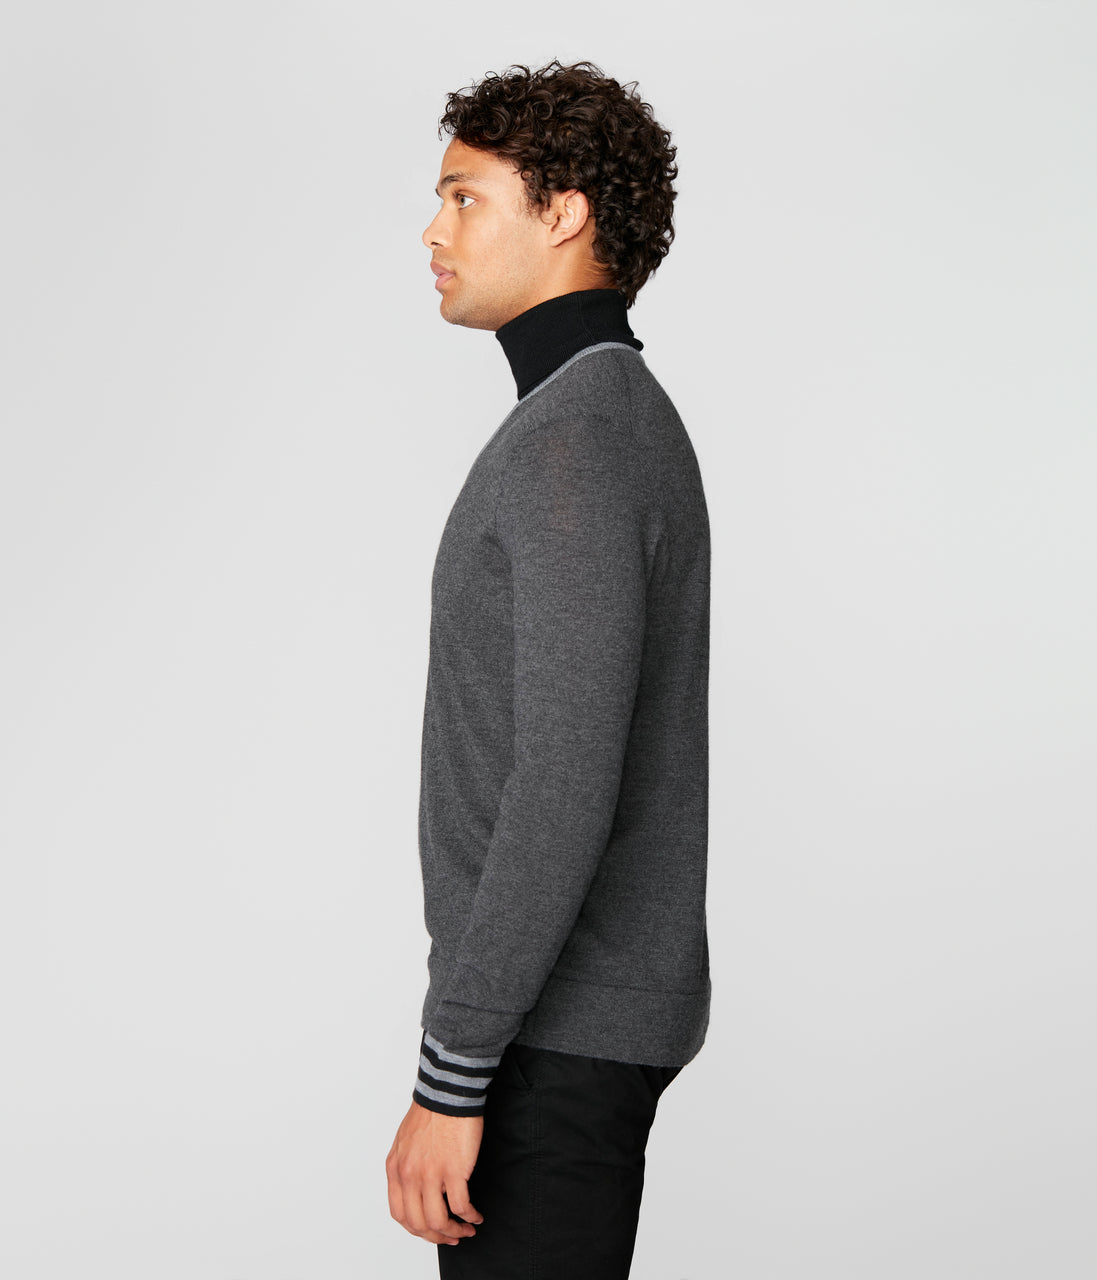 Icon Turtleneck in Merino Wool - Charcoal Heather - Good Man Brand - Icon Turtleneck in Merino Wool - Charcoal Heather